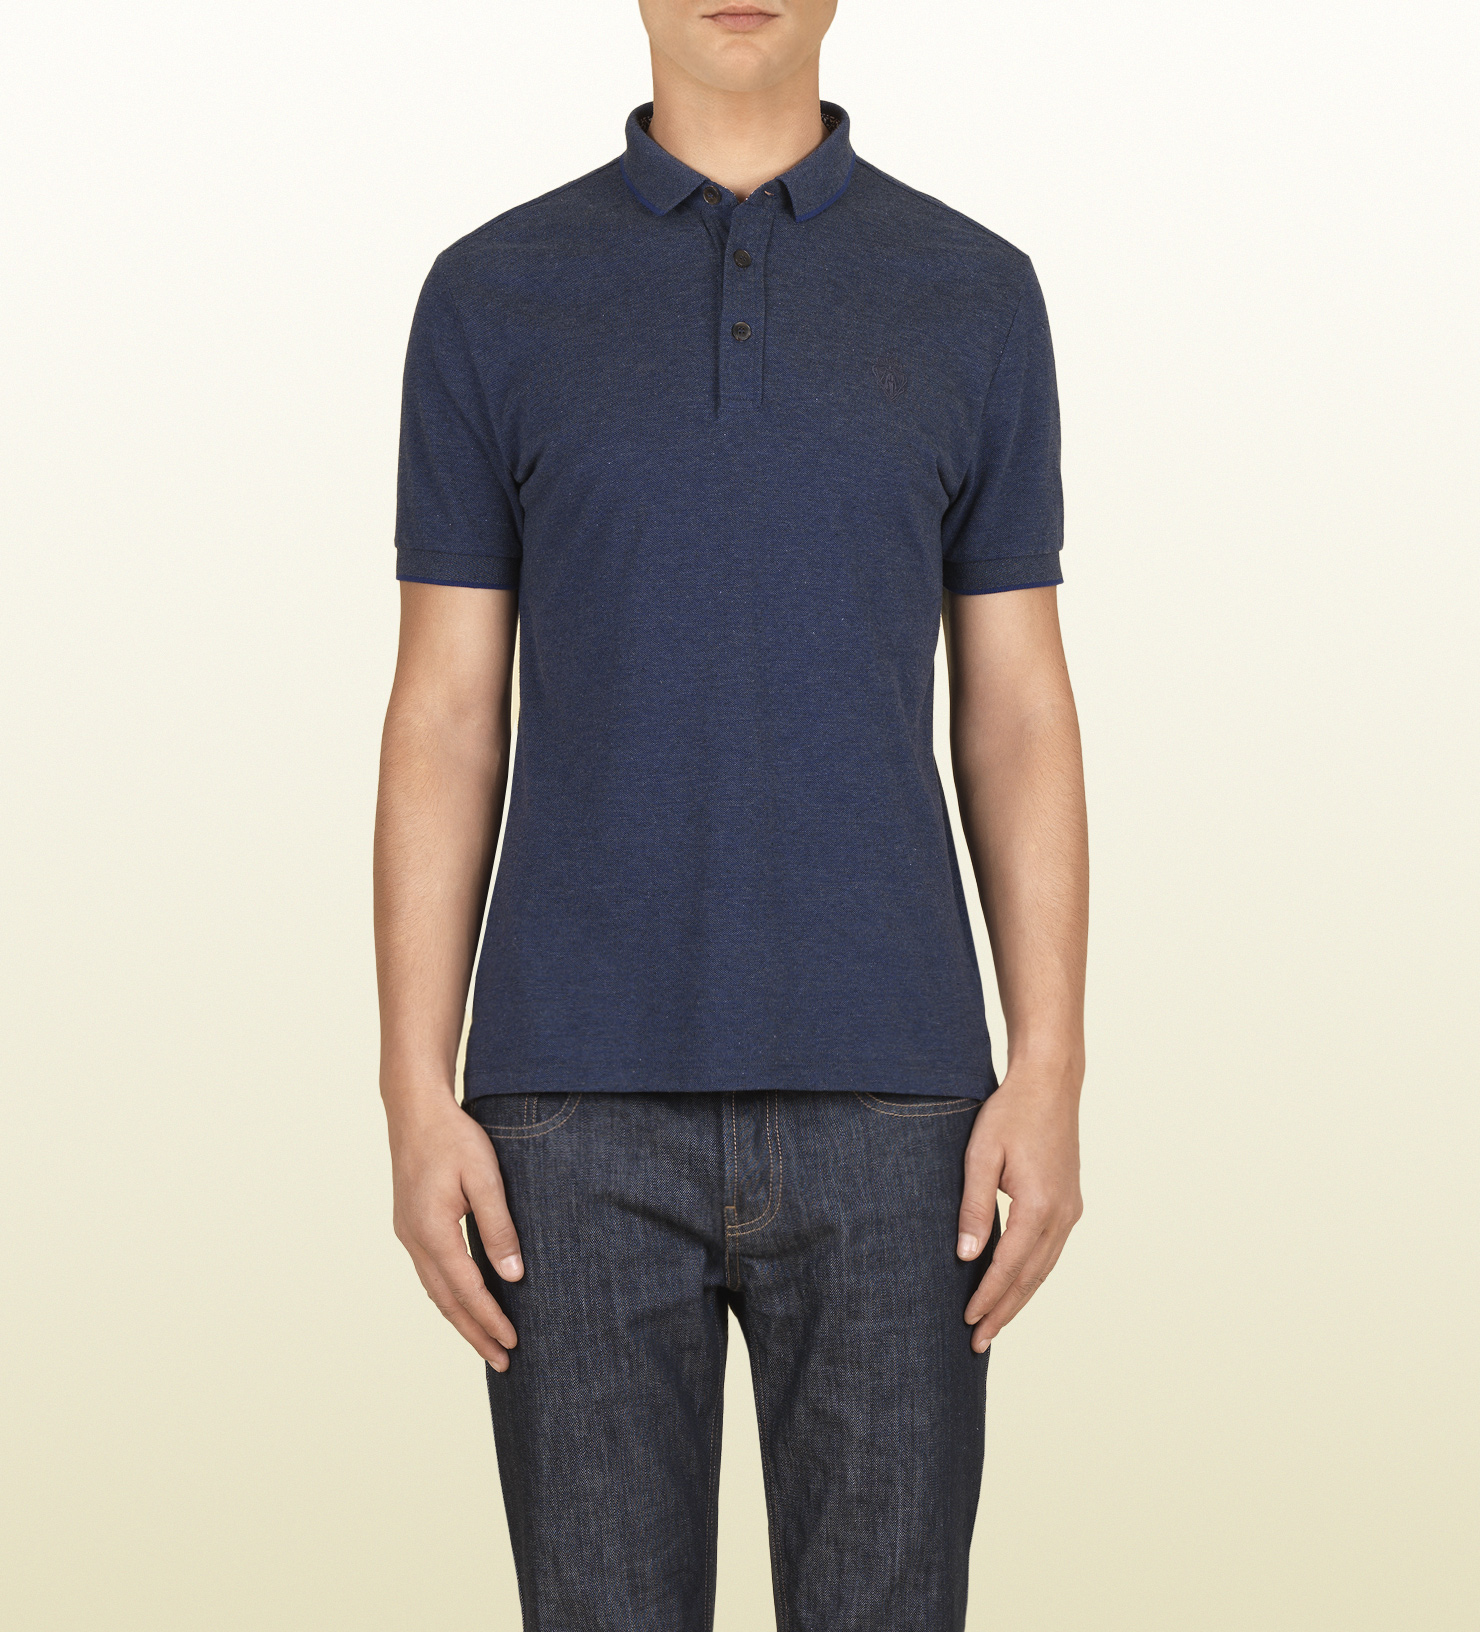 Gucci Blue Cotton Linen Short Sleeve Polo In Blue For Men